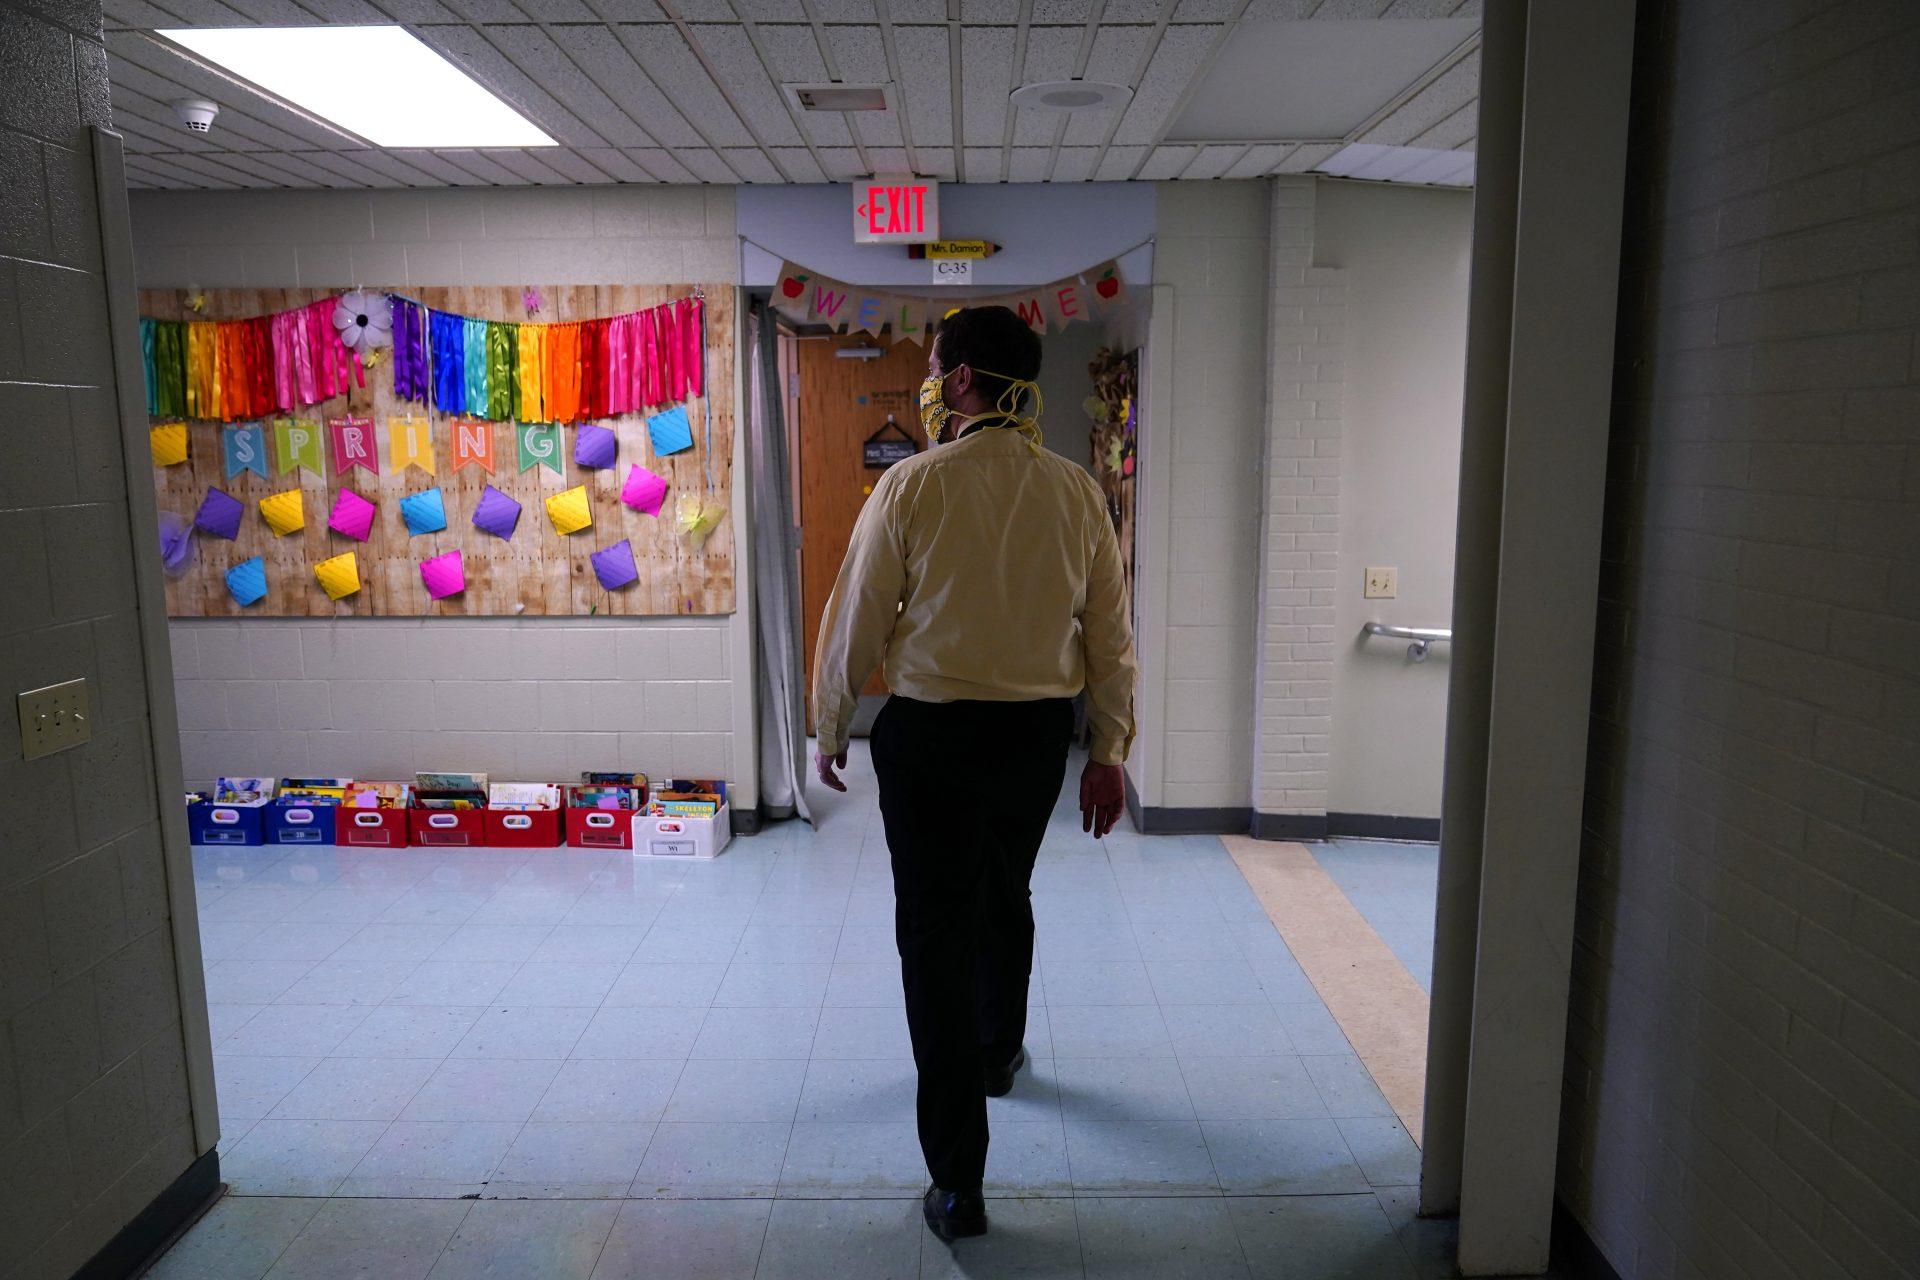 Principal Rob Palazzo walks down a hall at Panther Valley Elementary School, Thursday, March 11, 2021, in Nesquehoning, Pa. On May 26, 2020, former student, 9-year-old Ava Lerario; her mother, Ashley Belson, and Ava's father, Marc Lerario, were found fatally shot inside their home. Palazzo says he and the rest of the school and community are grappling with the what-ifs: What if school had been open, and they had a chance to save Ava?